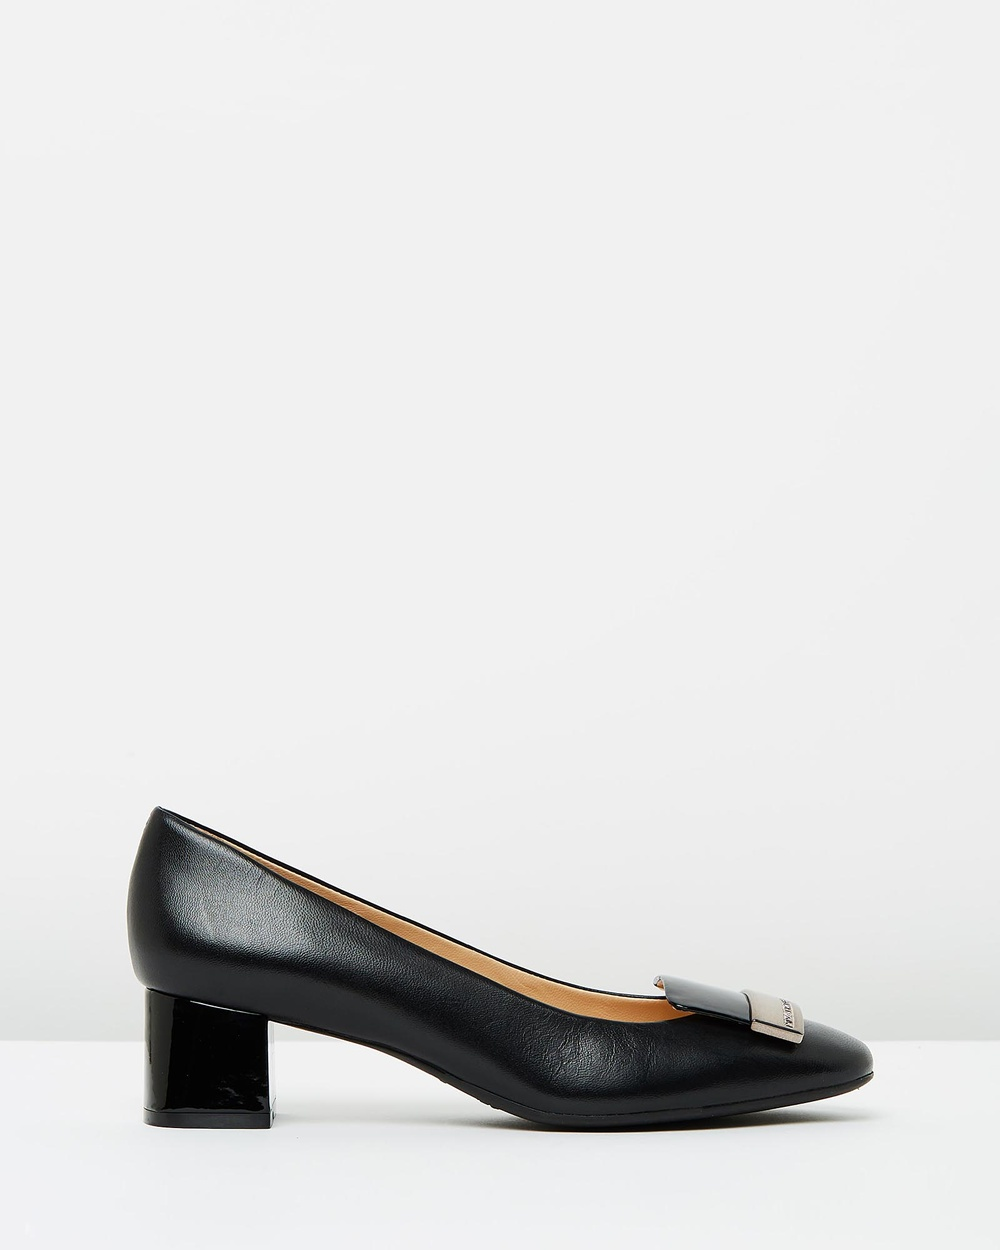 Nina Armando Trinity Pumps All Pumps Black Trinity Pumps